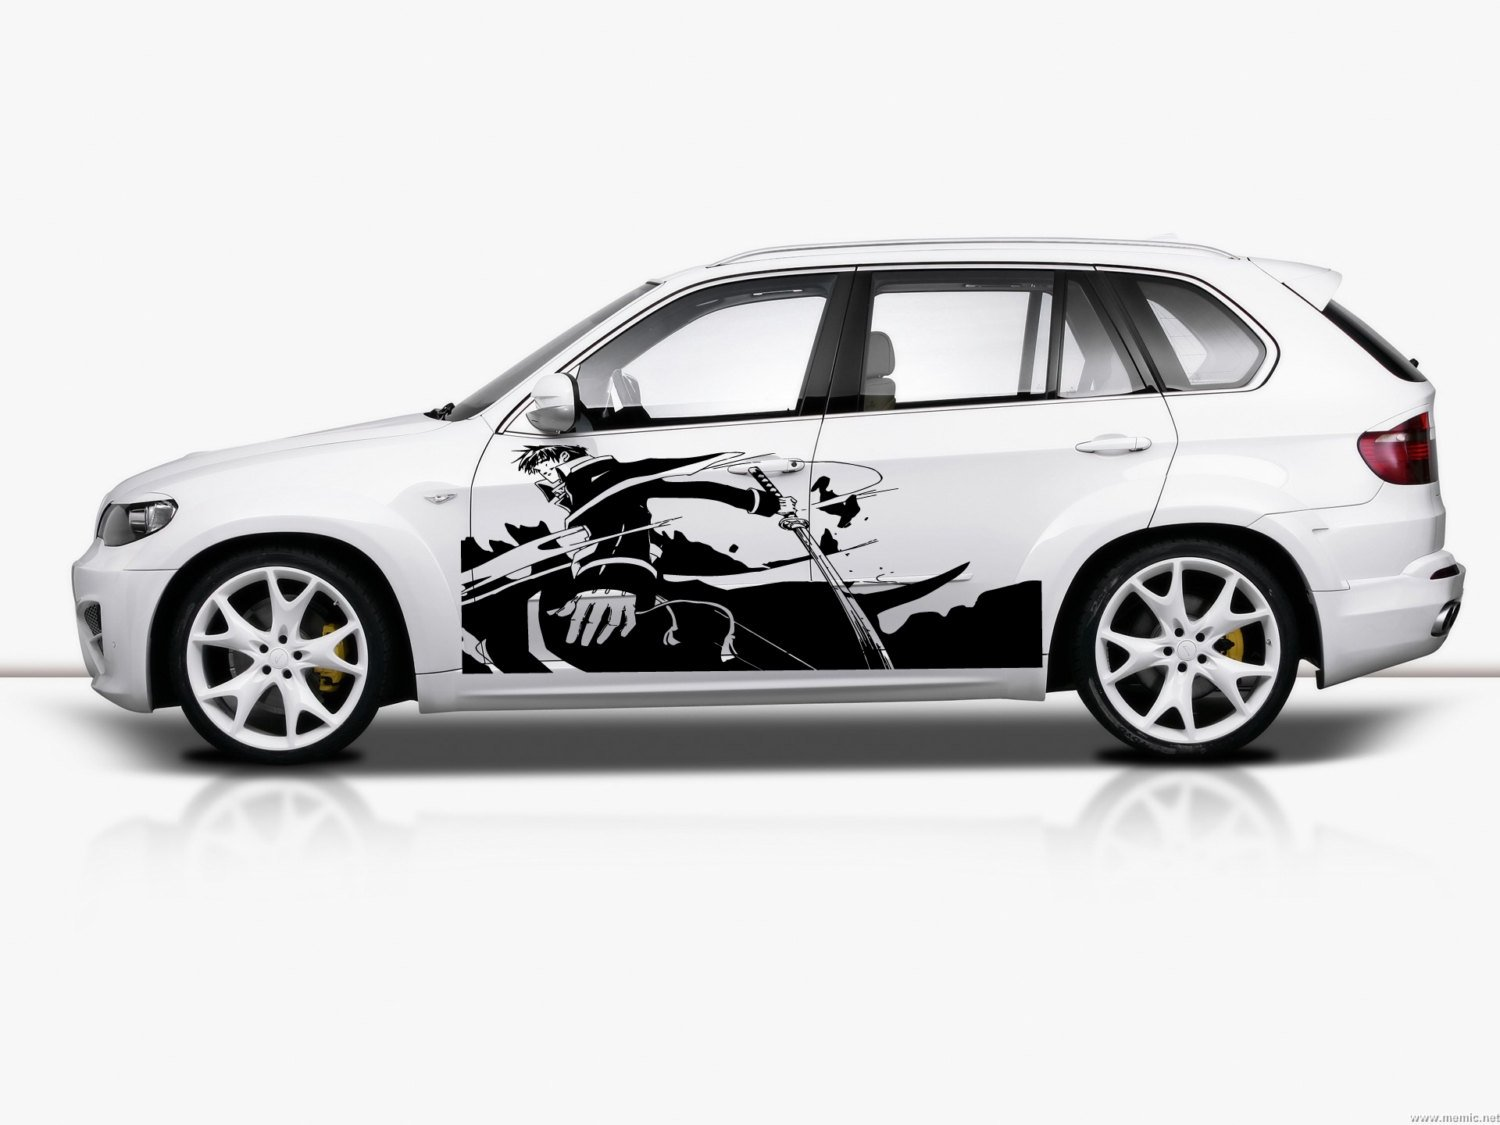 Amazon com anime manga japan cartoon car side vinyl graphics vehicle wrap car side design g6503 home kitchen